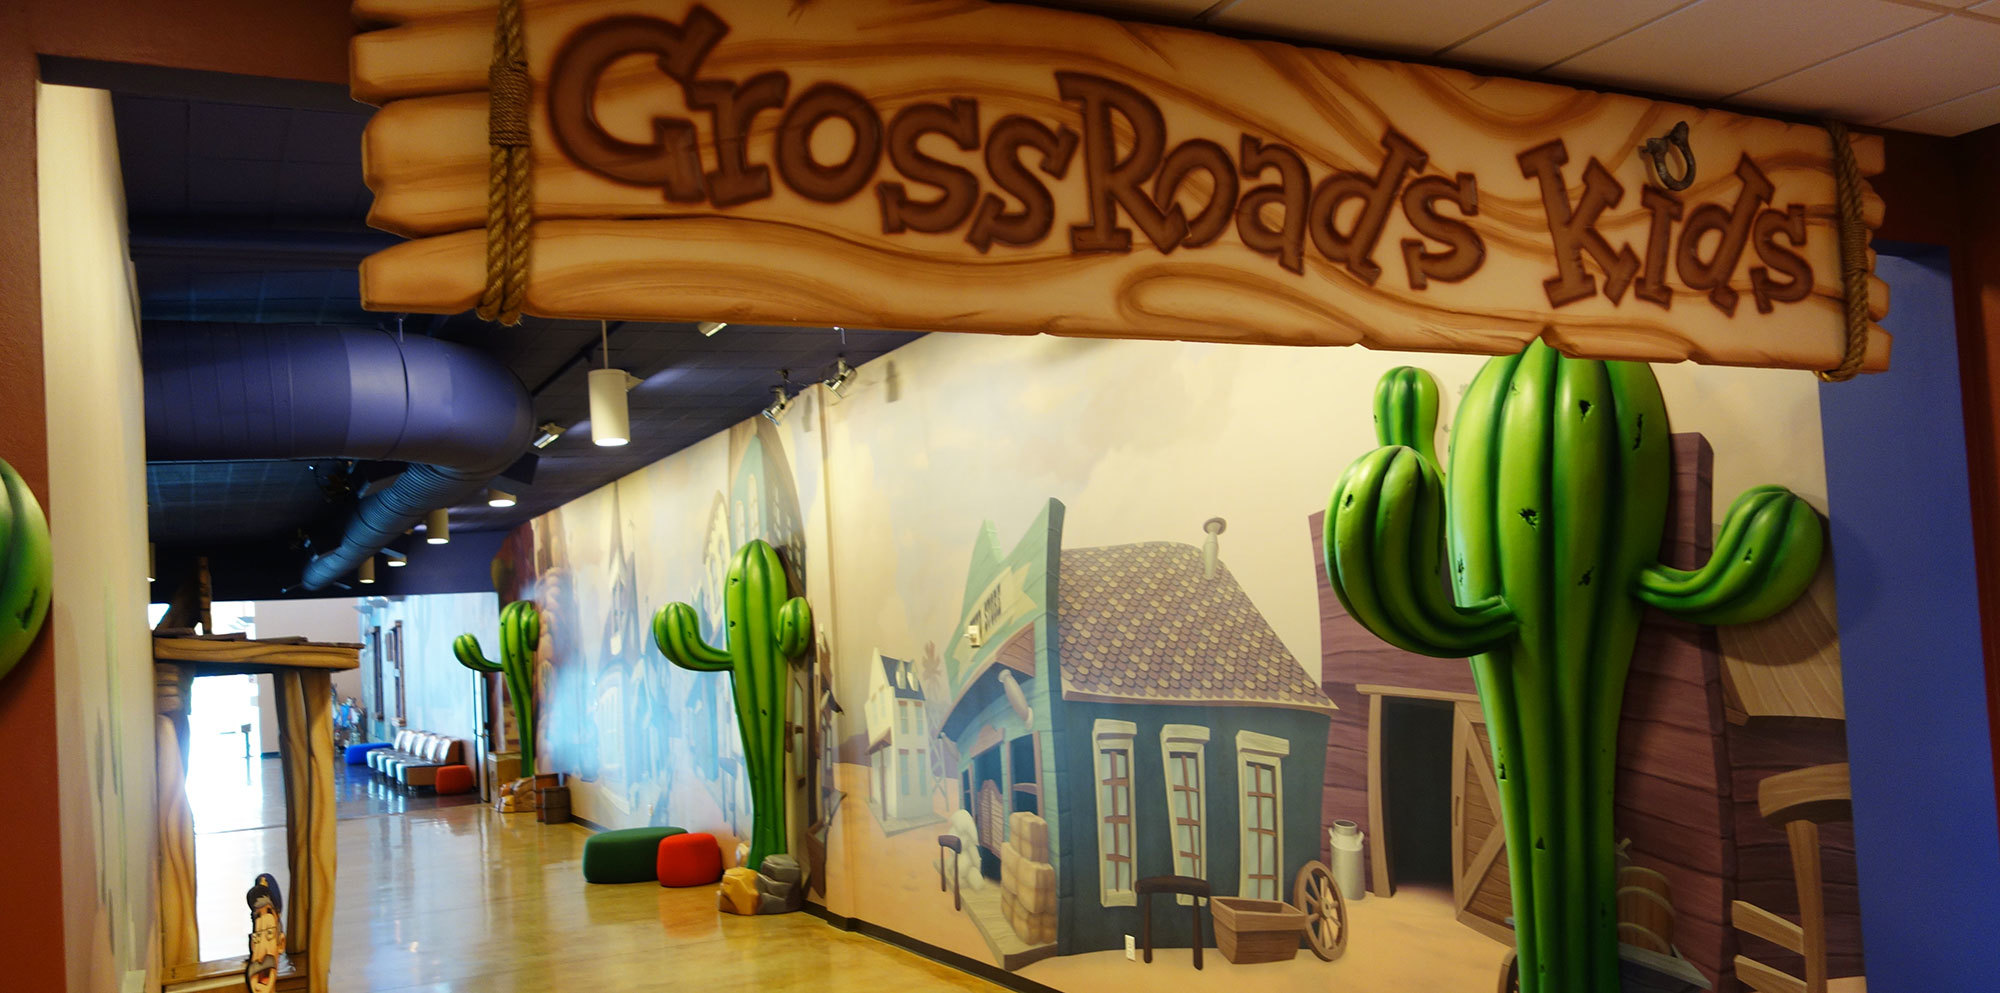 Old West Western Themed Space and Sign at Crossroads Church TX